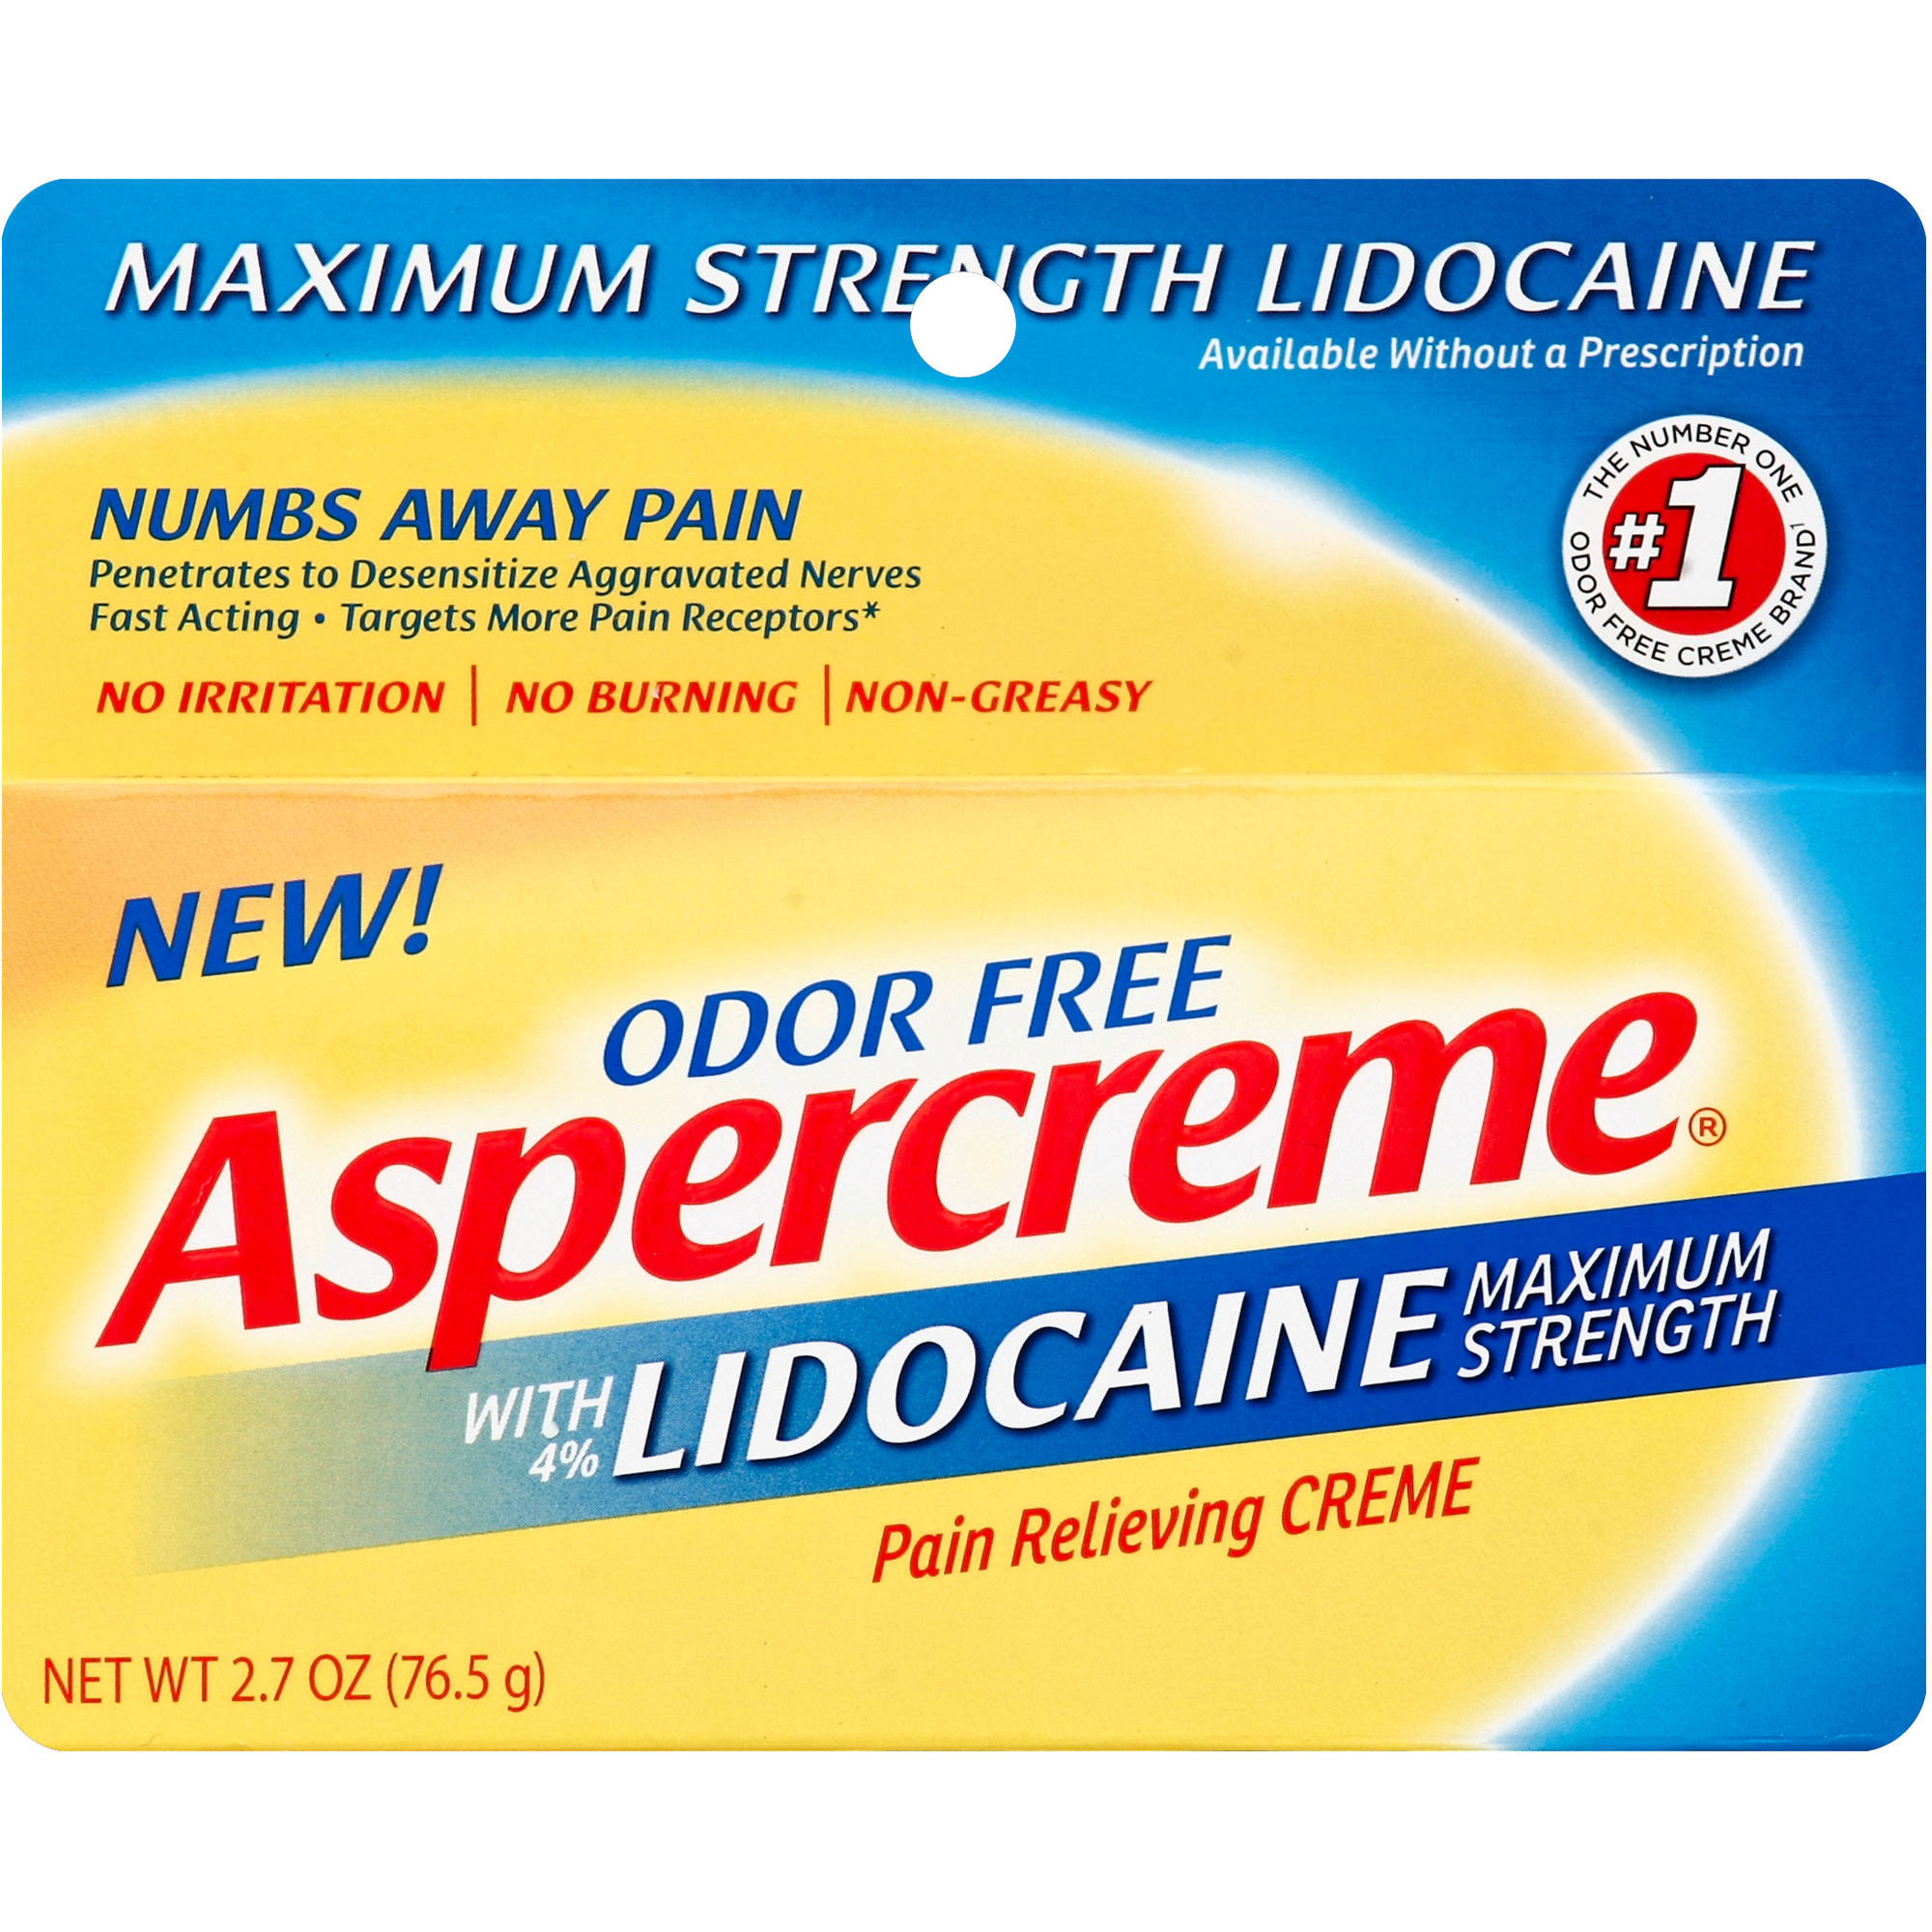 Aspercreme Maximum Strength with 4% Lidocaine Pain Relieving Creme, 2.7 oz